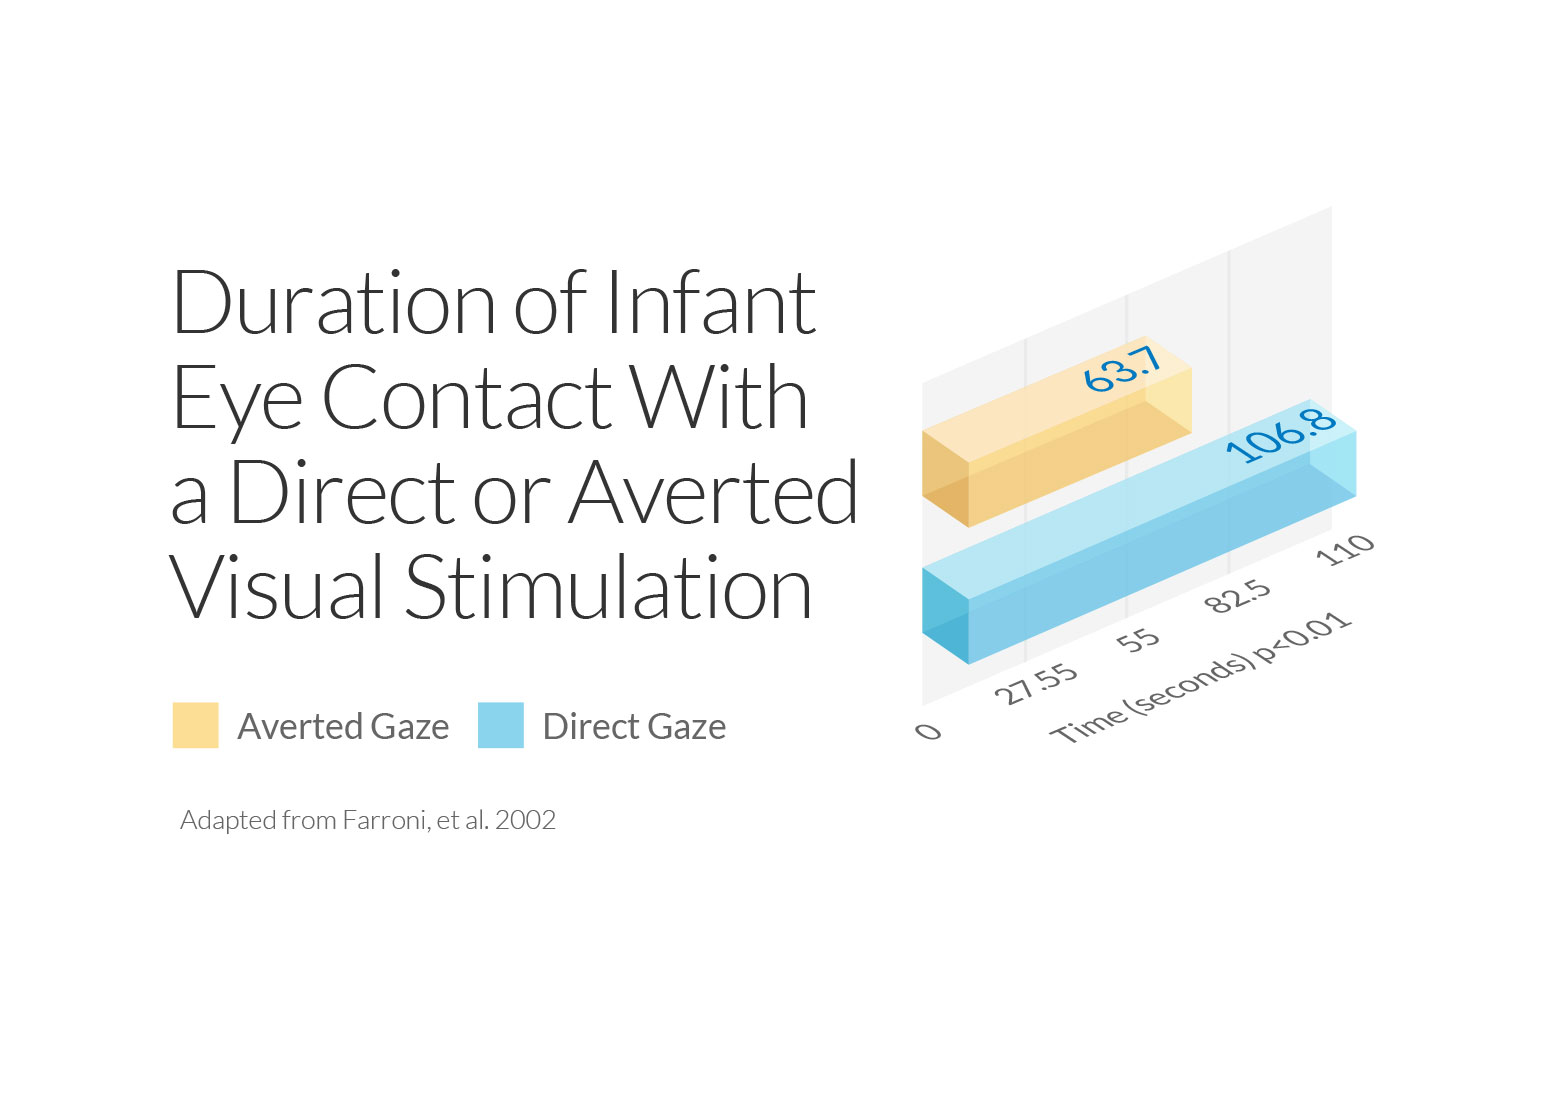 Duration of Infant Eye Contact